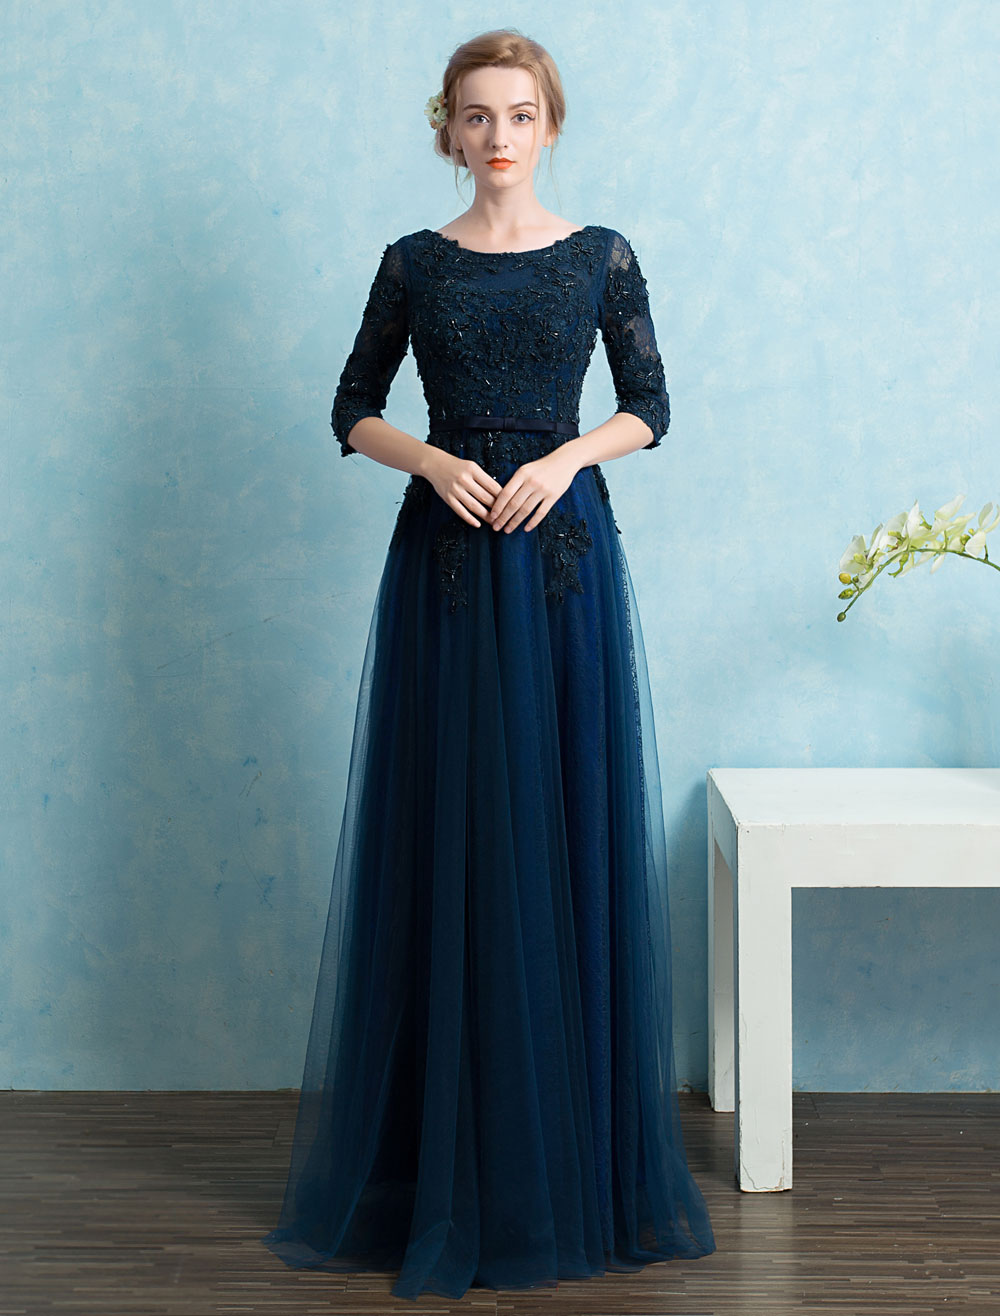 Buy Lace Evening Dresses Tull A Line Floor Length Mother Of The Bride Dresses Backless Beading Applique Half Sleeve Belted Wedding Guest Dresses for $123.19 in Milanoo store